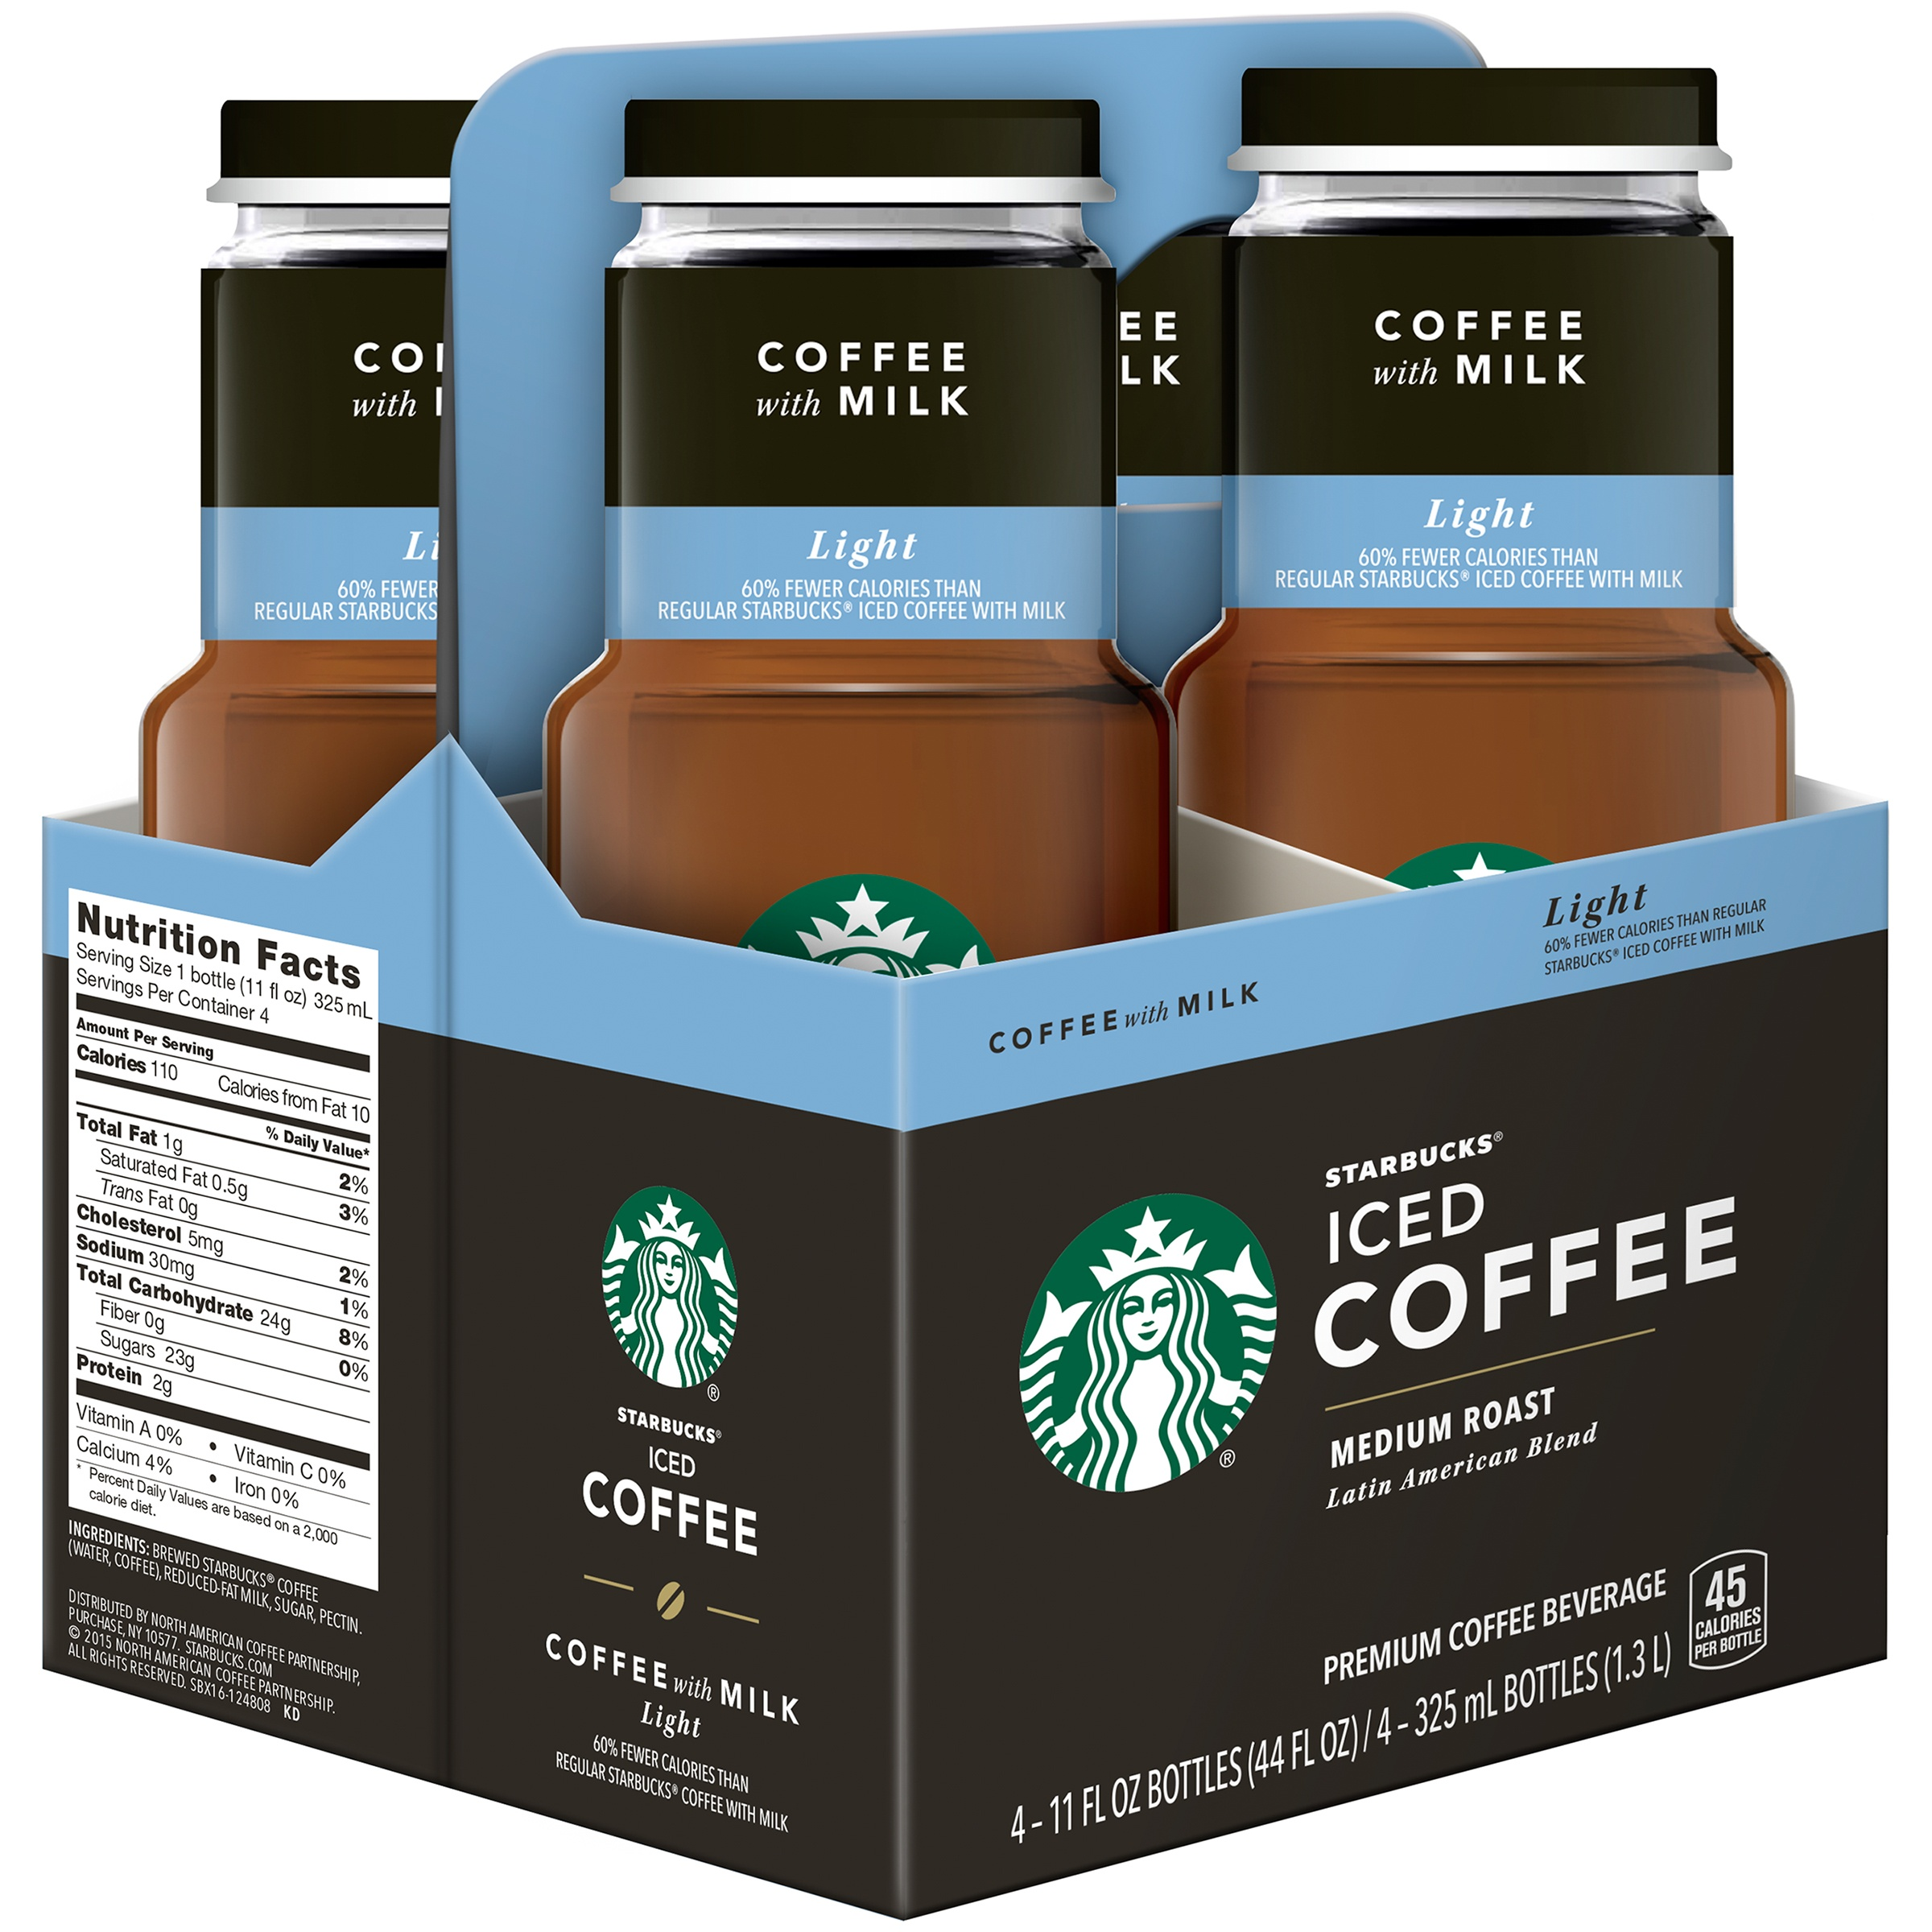 Starbucks© Medium Roast Light Iced Coffee, 4 Count, 11 fl oz Bottles